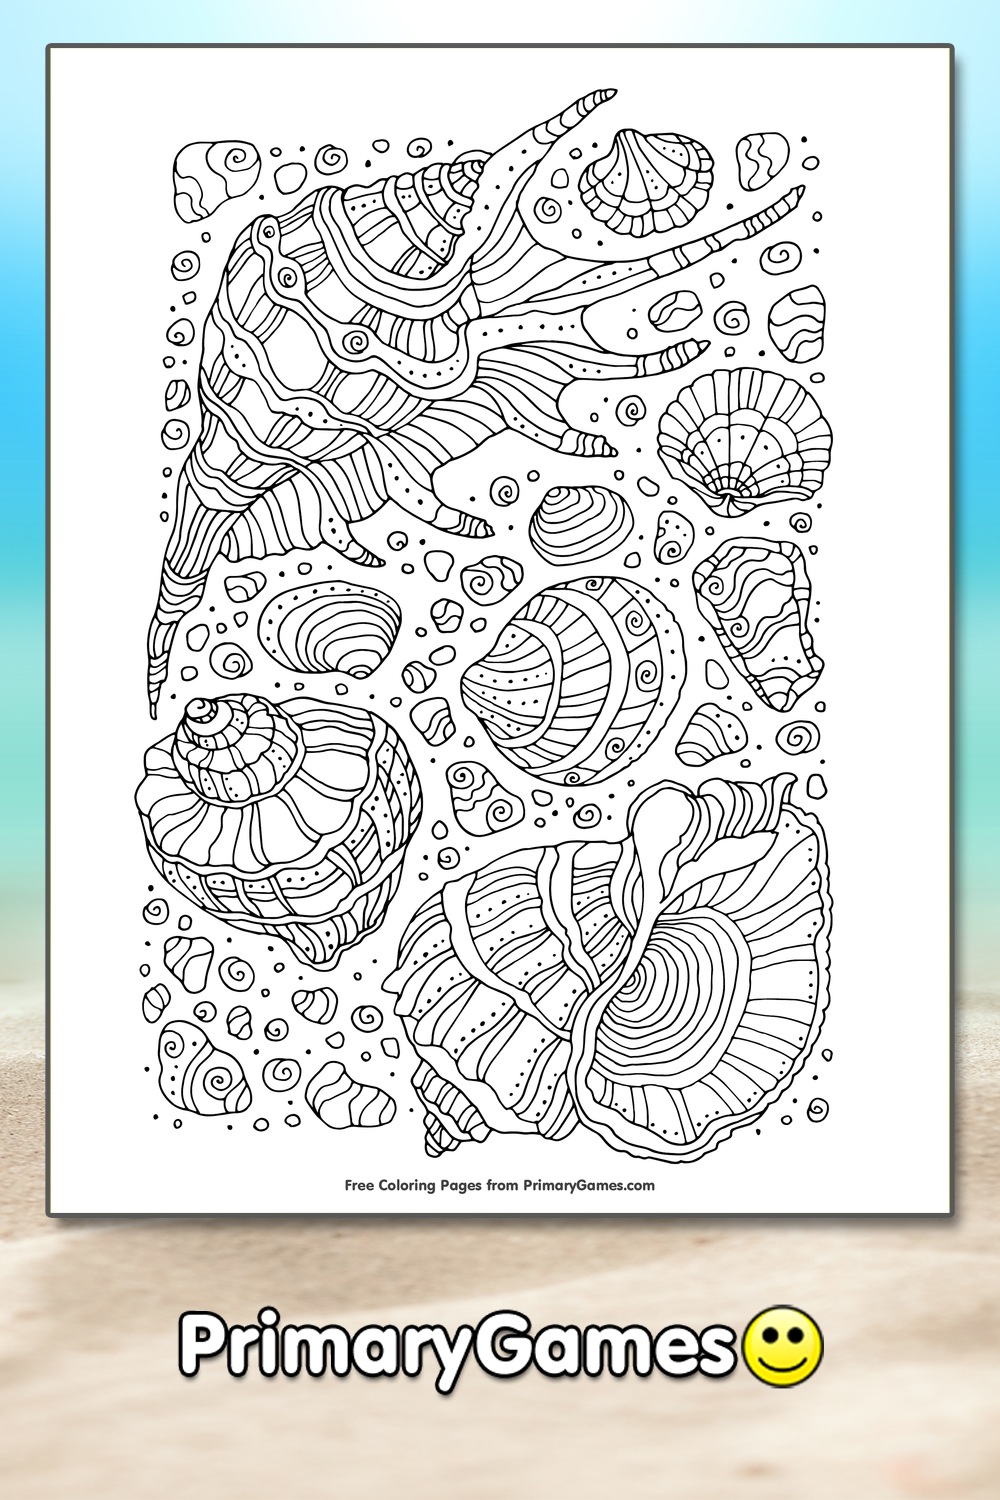 TagsFall Coloring Pages Printable EBook PrimaryGamesEaster EBookDictionarycoms List Of Every Word The Year